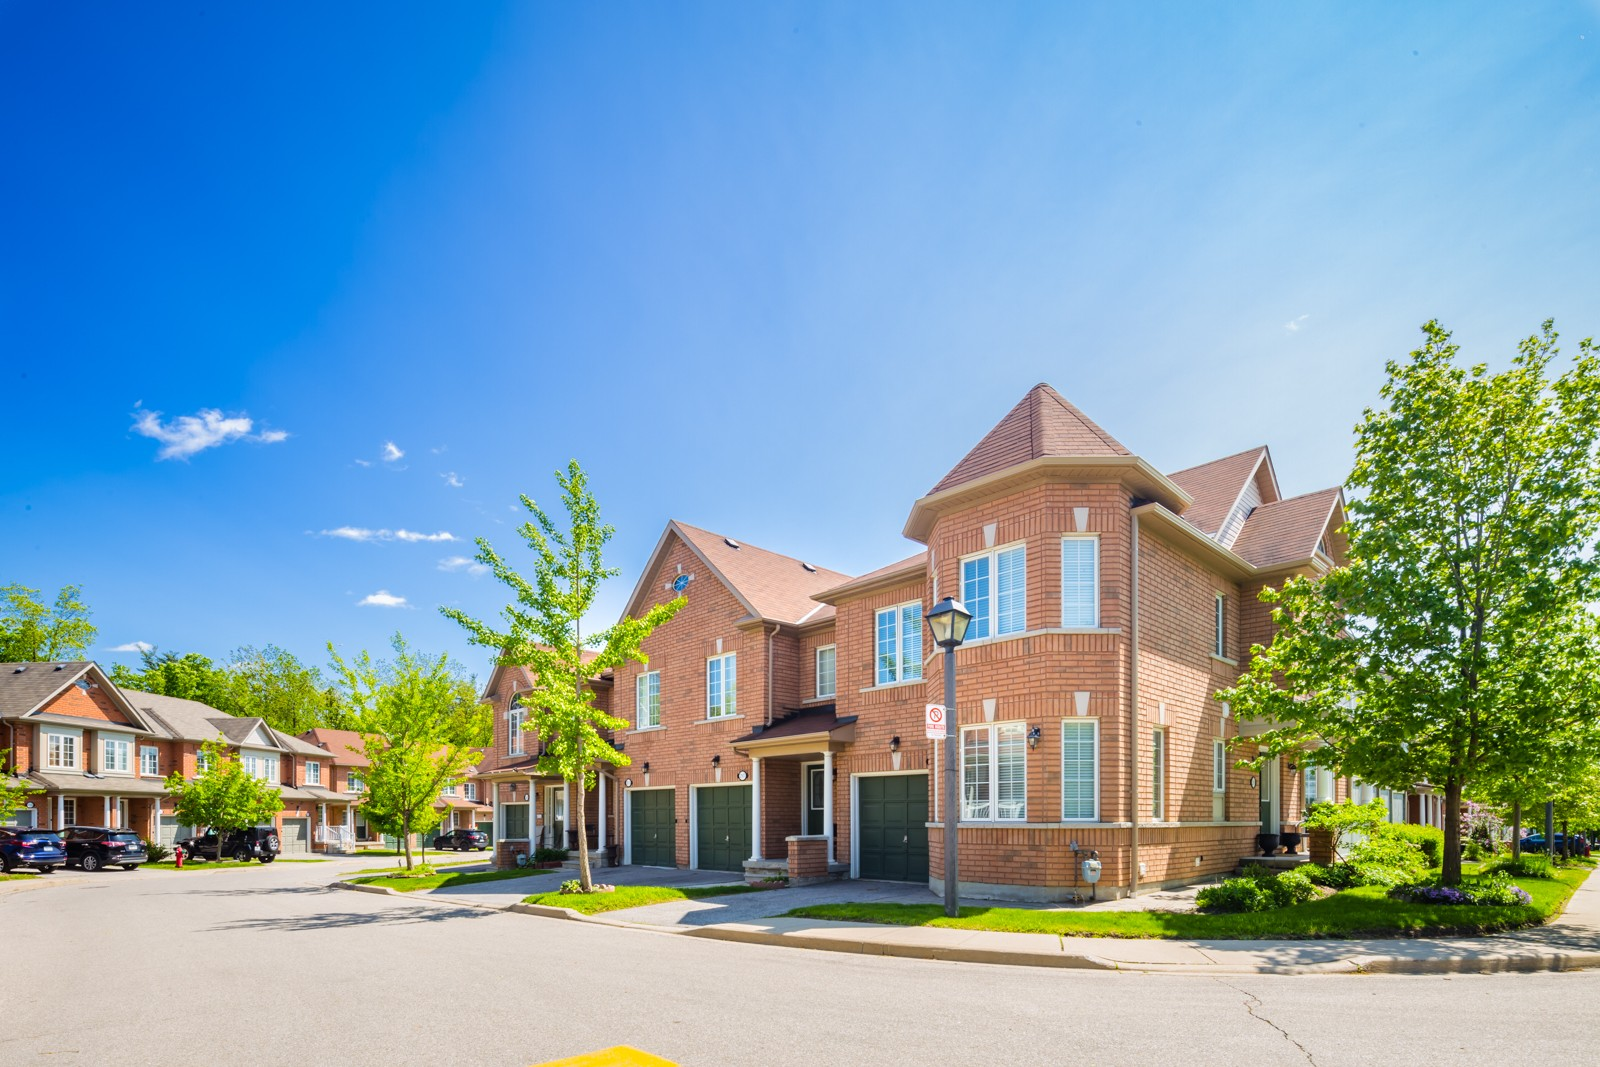 7360 Zinnia Pl Townhouses at 7360 Zinnia Pl, Mississauga 1